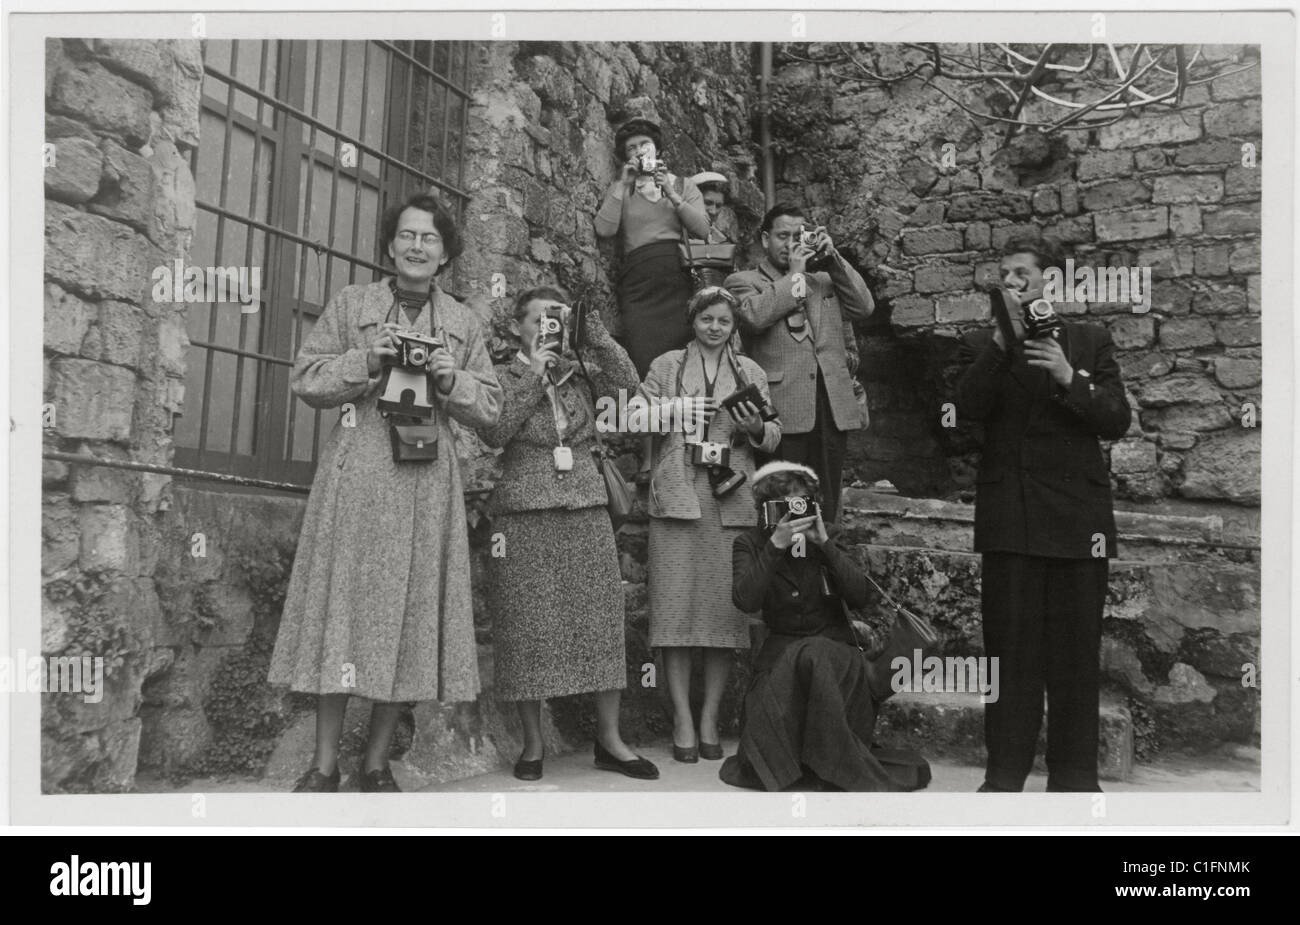 Postcard of Camera Club members taking photographs of a tourist site in Sicily, Italy  - circa 1940's  1950's, - Stock Image